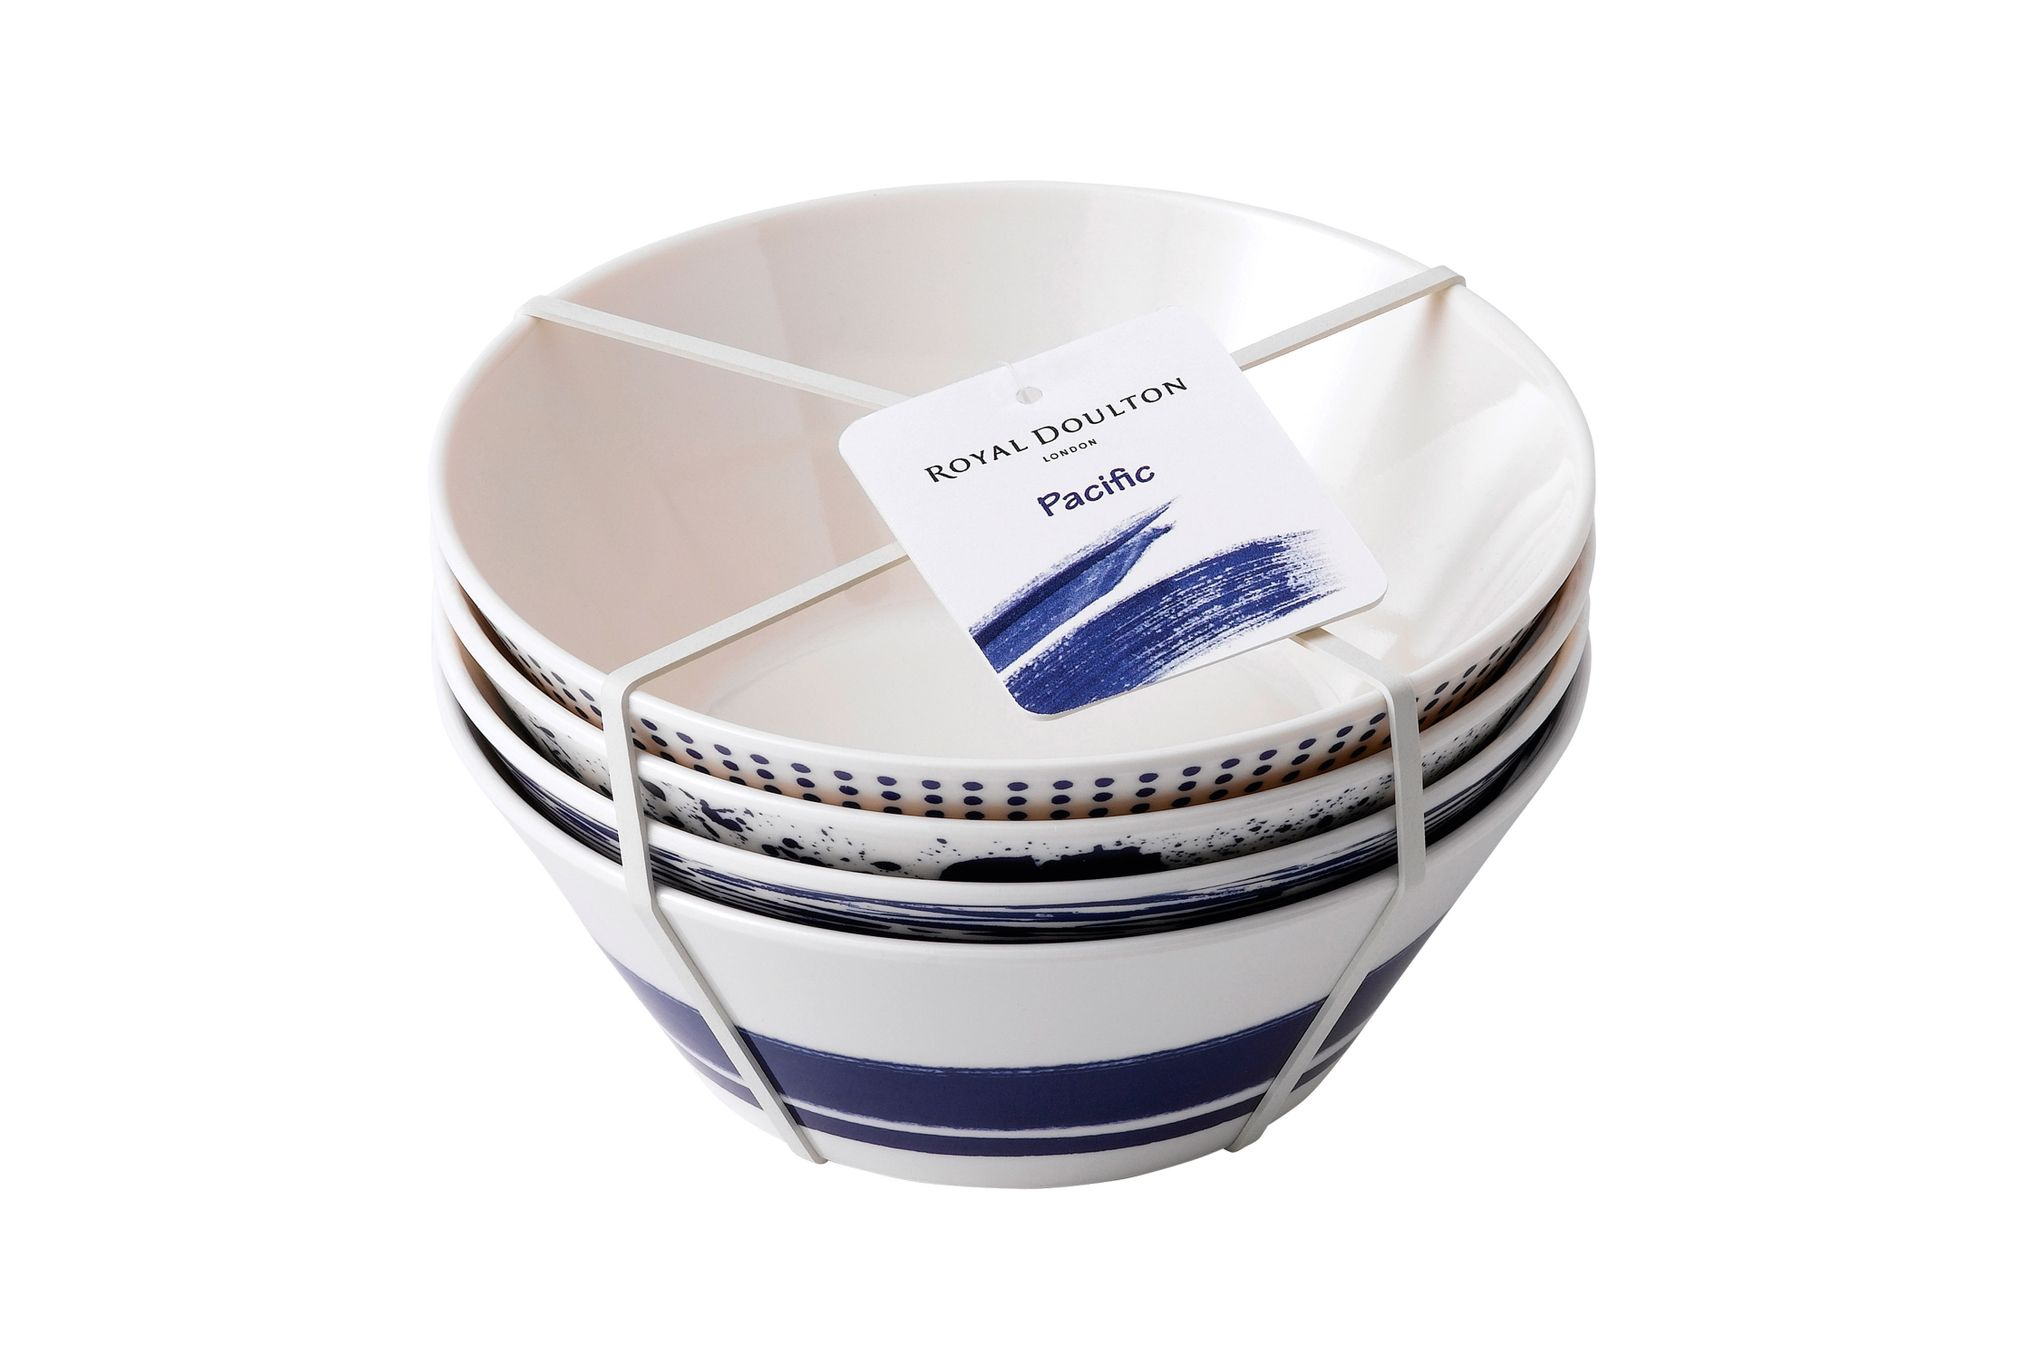 Royal Doulton Outdoor Living - Pacific Cereal Bowl - Set of 4 Melamine 15cm thumb 3